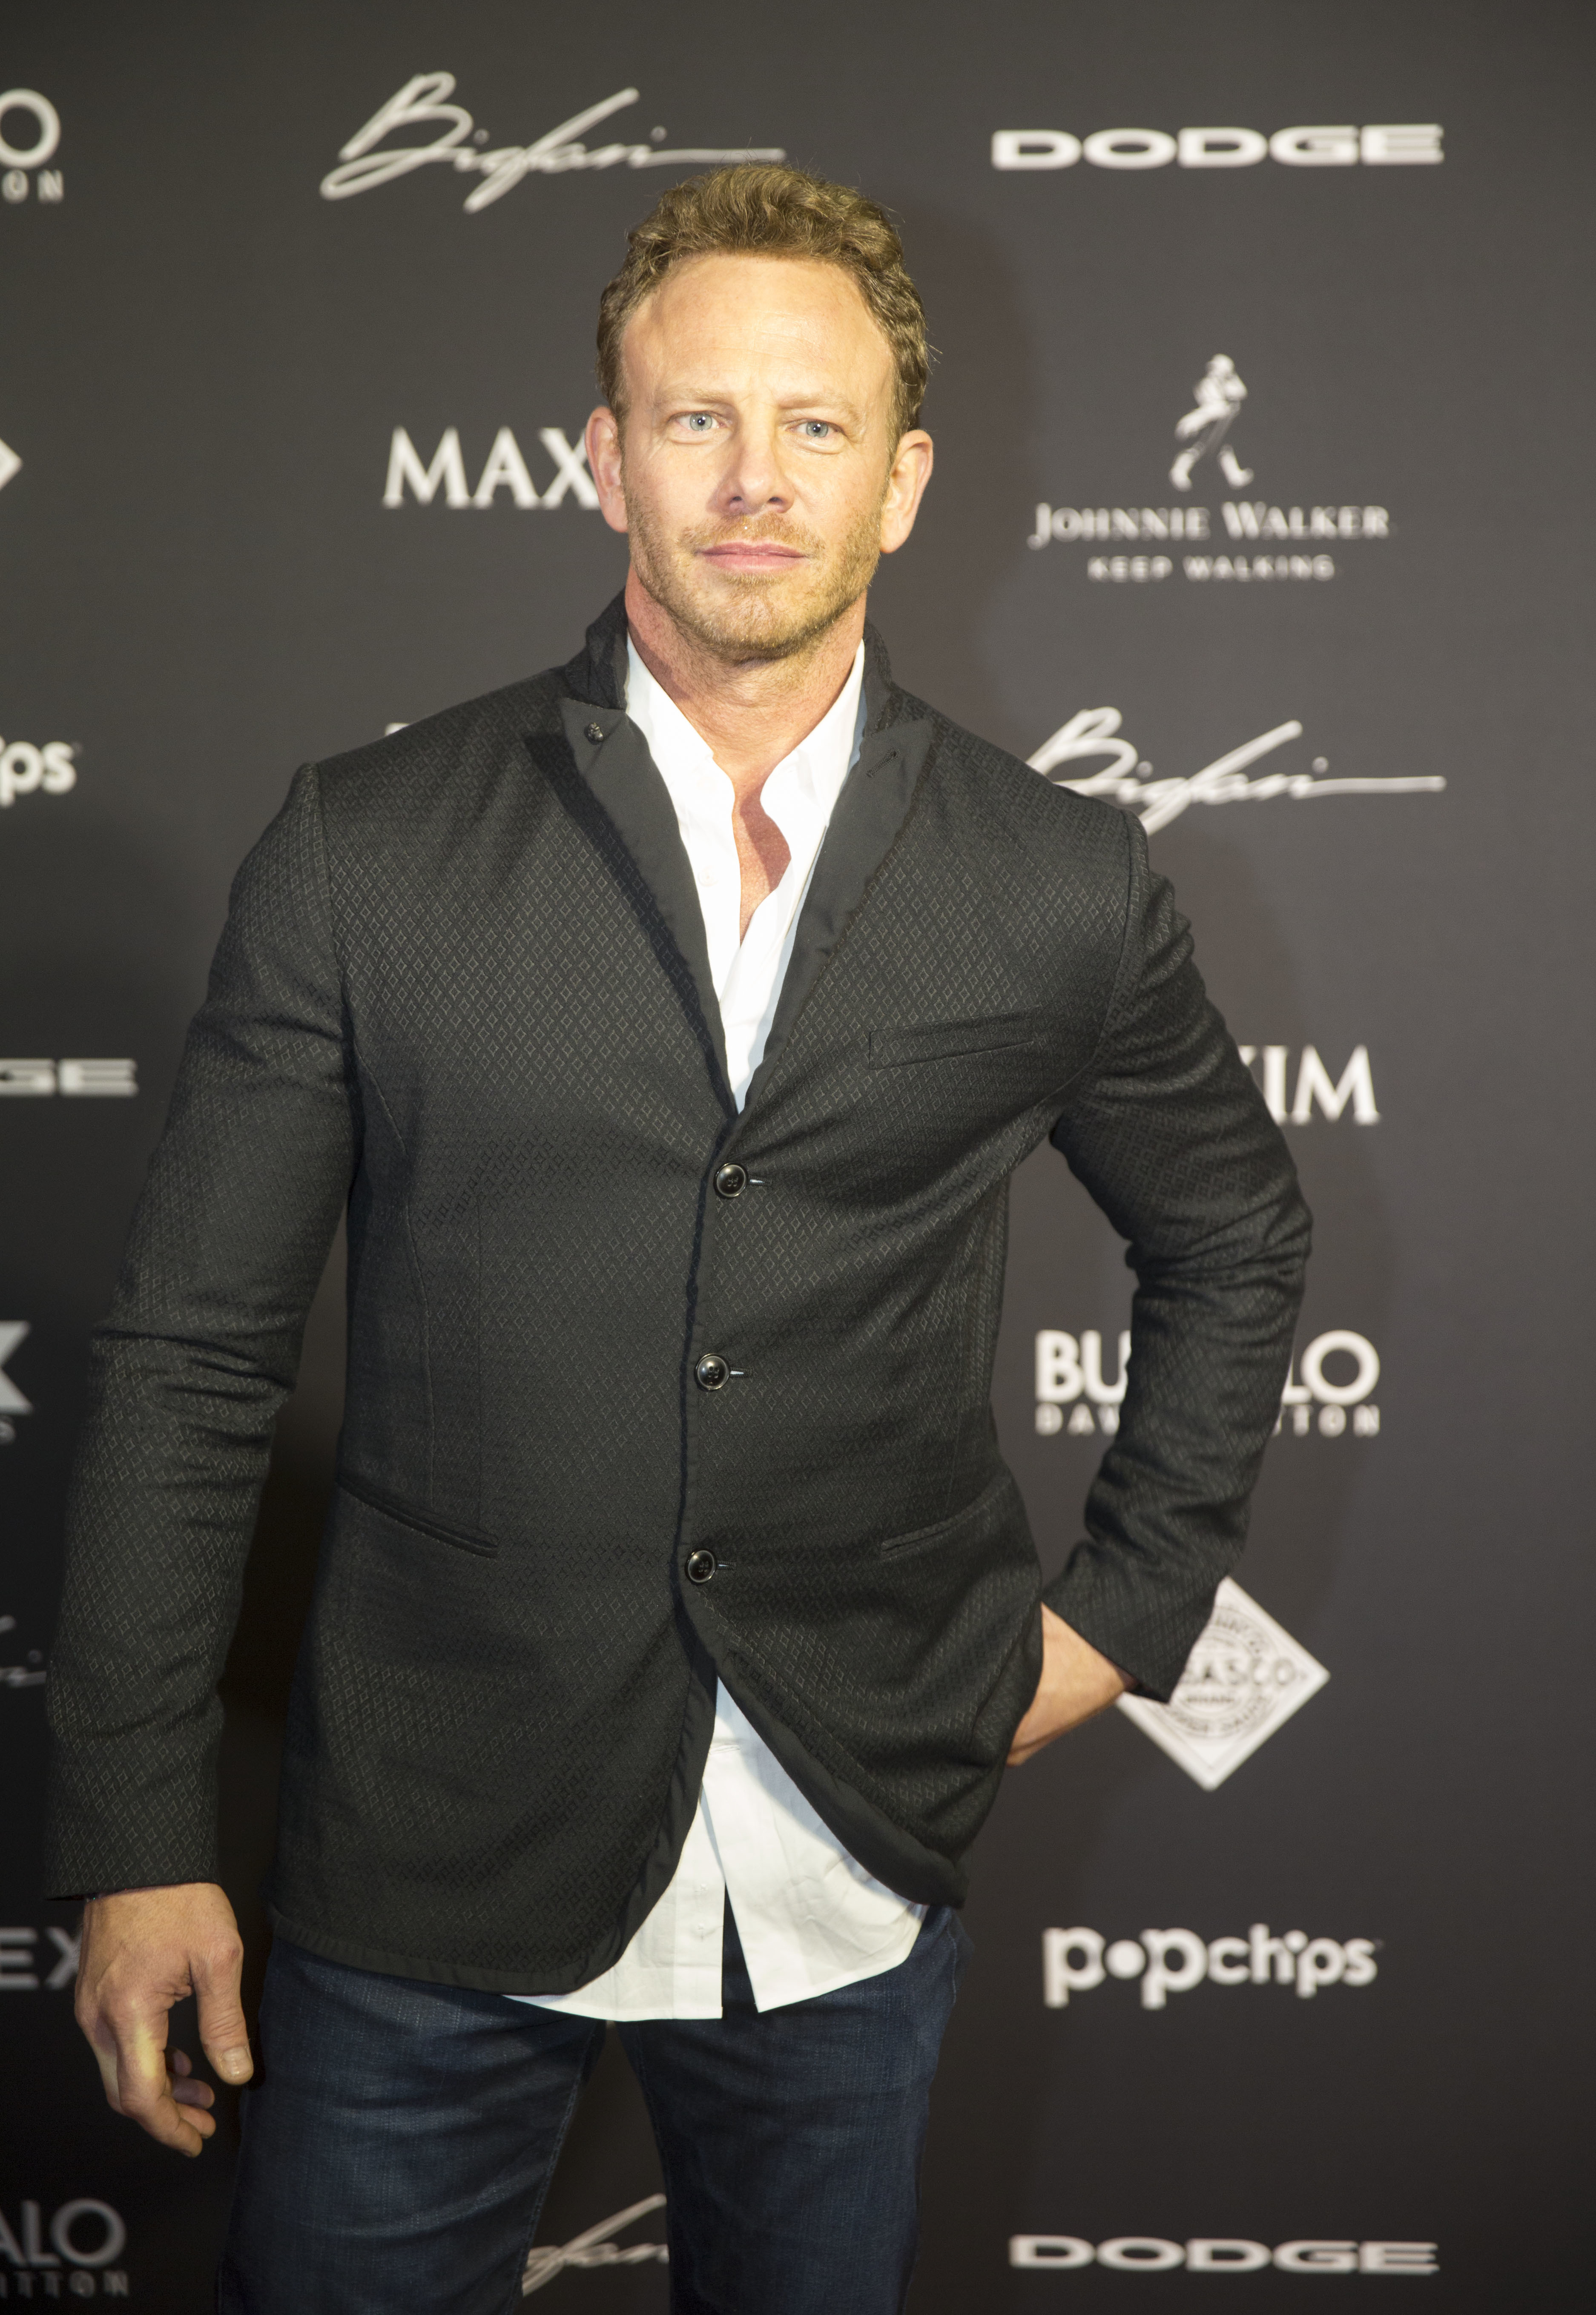 Ian Ziering on why he's opening up about his experiences with bed wetting: